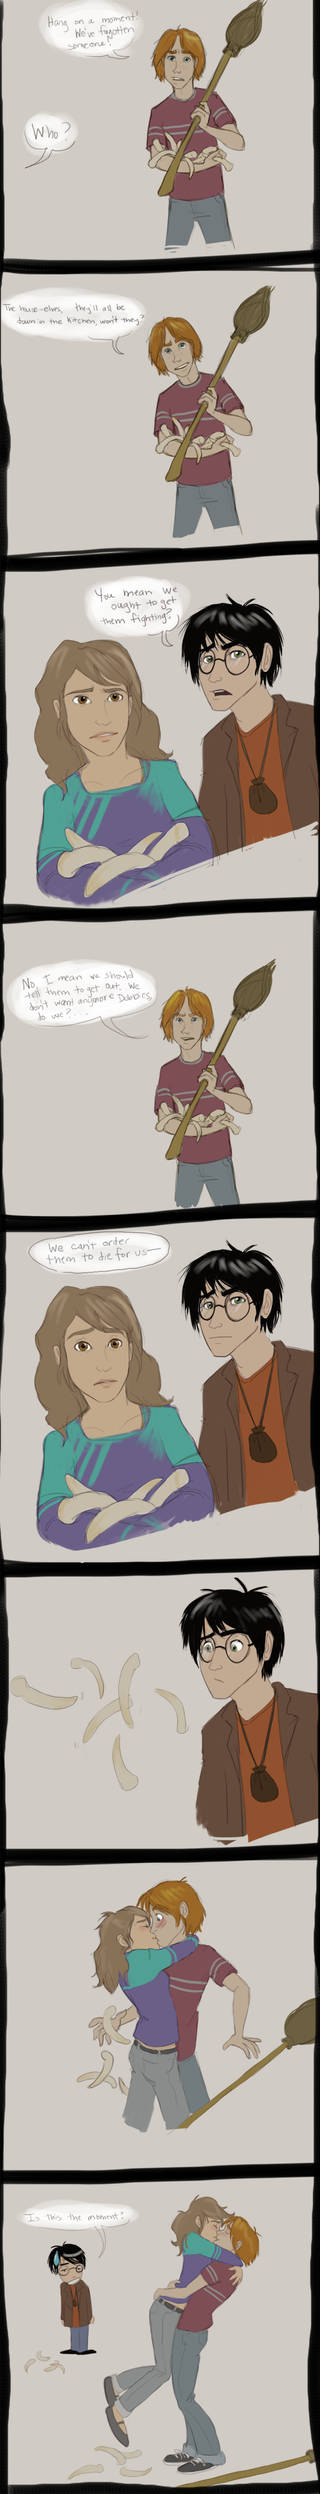 Ron and Hermione-HP7 spoiler by trustahope